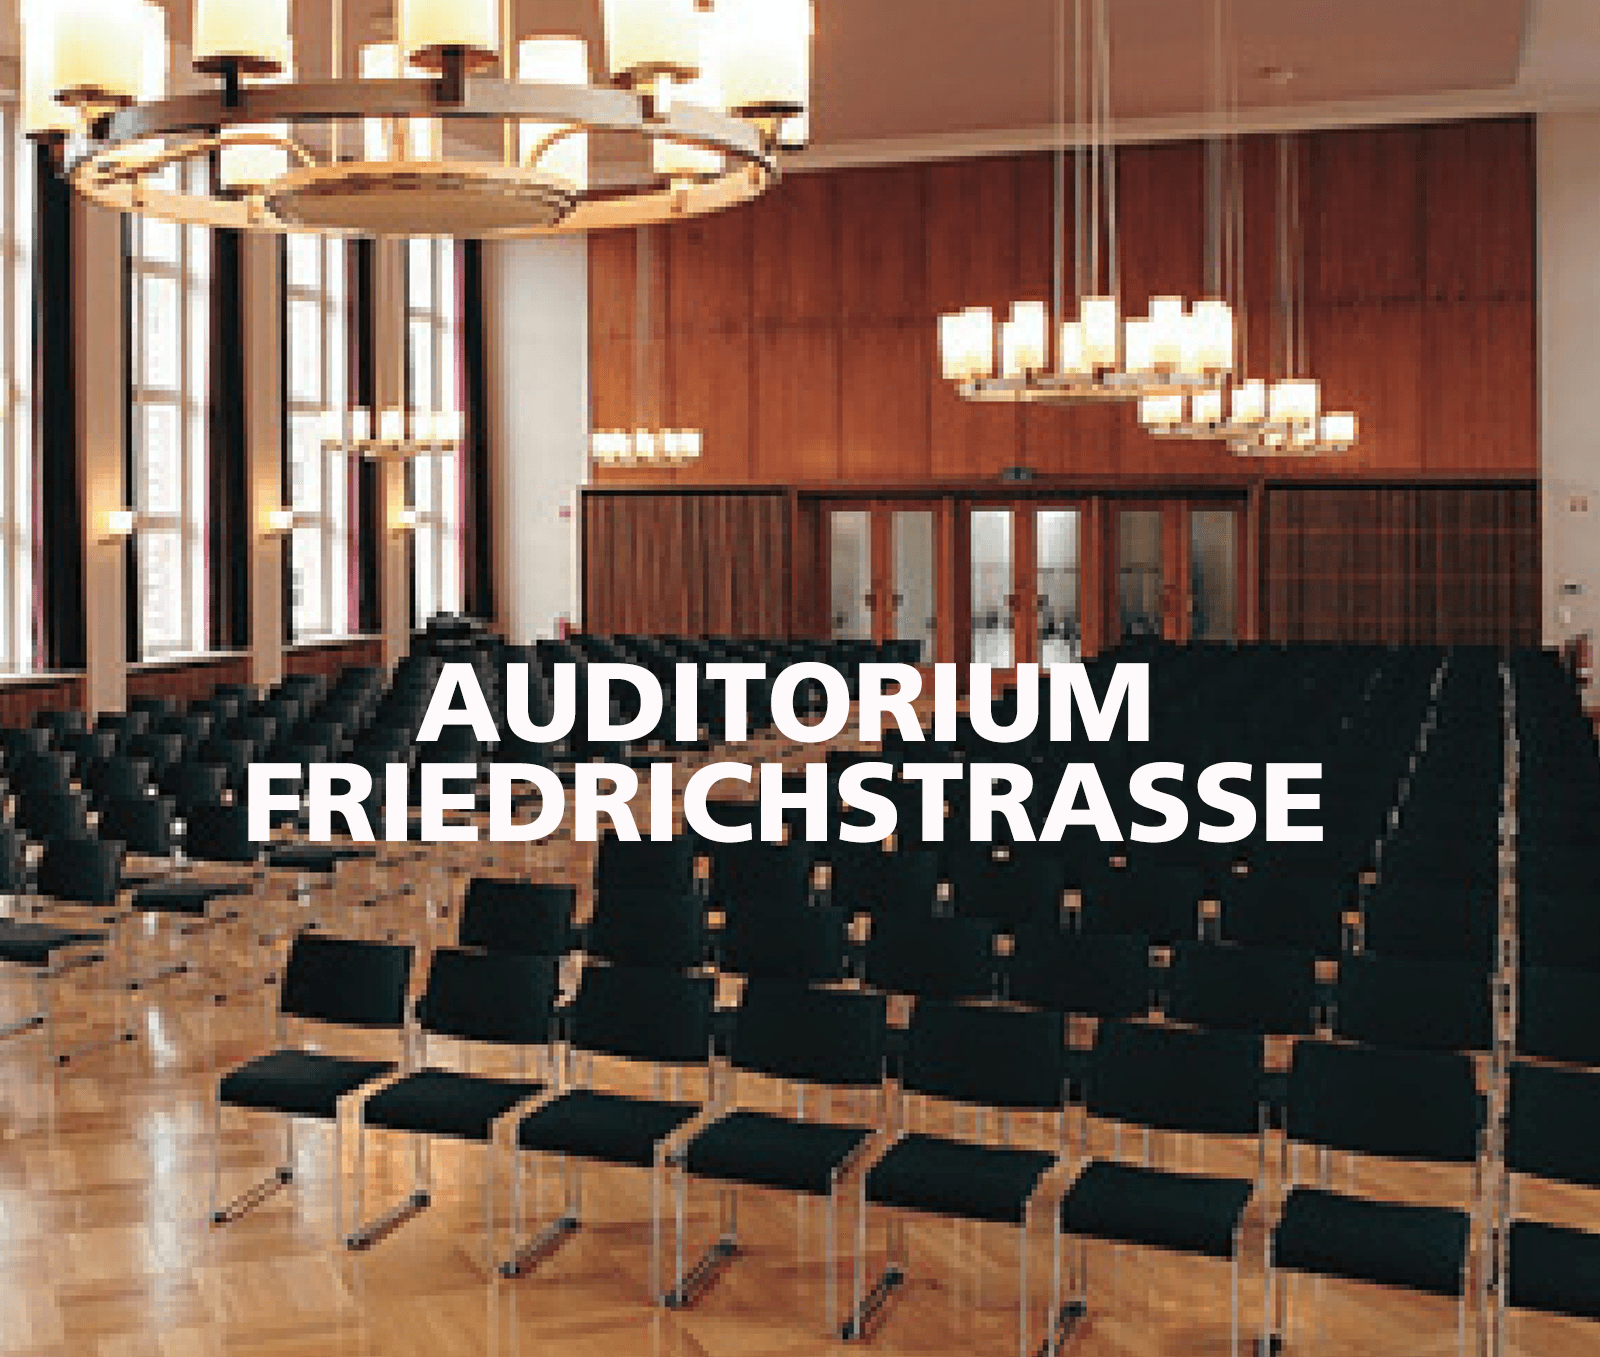 FLORIS Partnerlocation Auditorium Friedrichstrasse